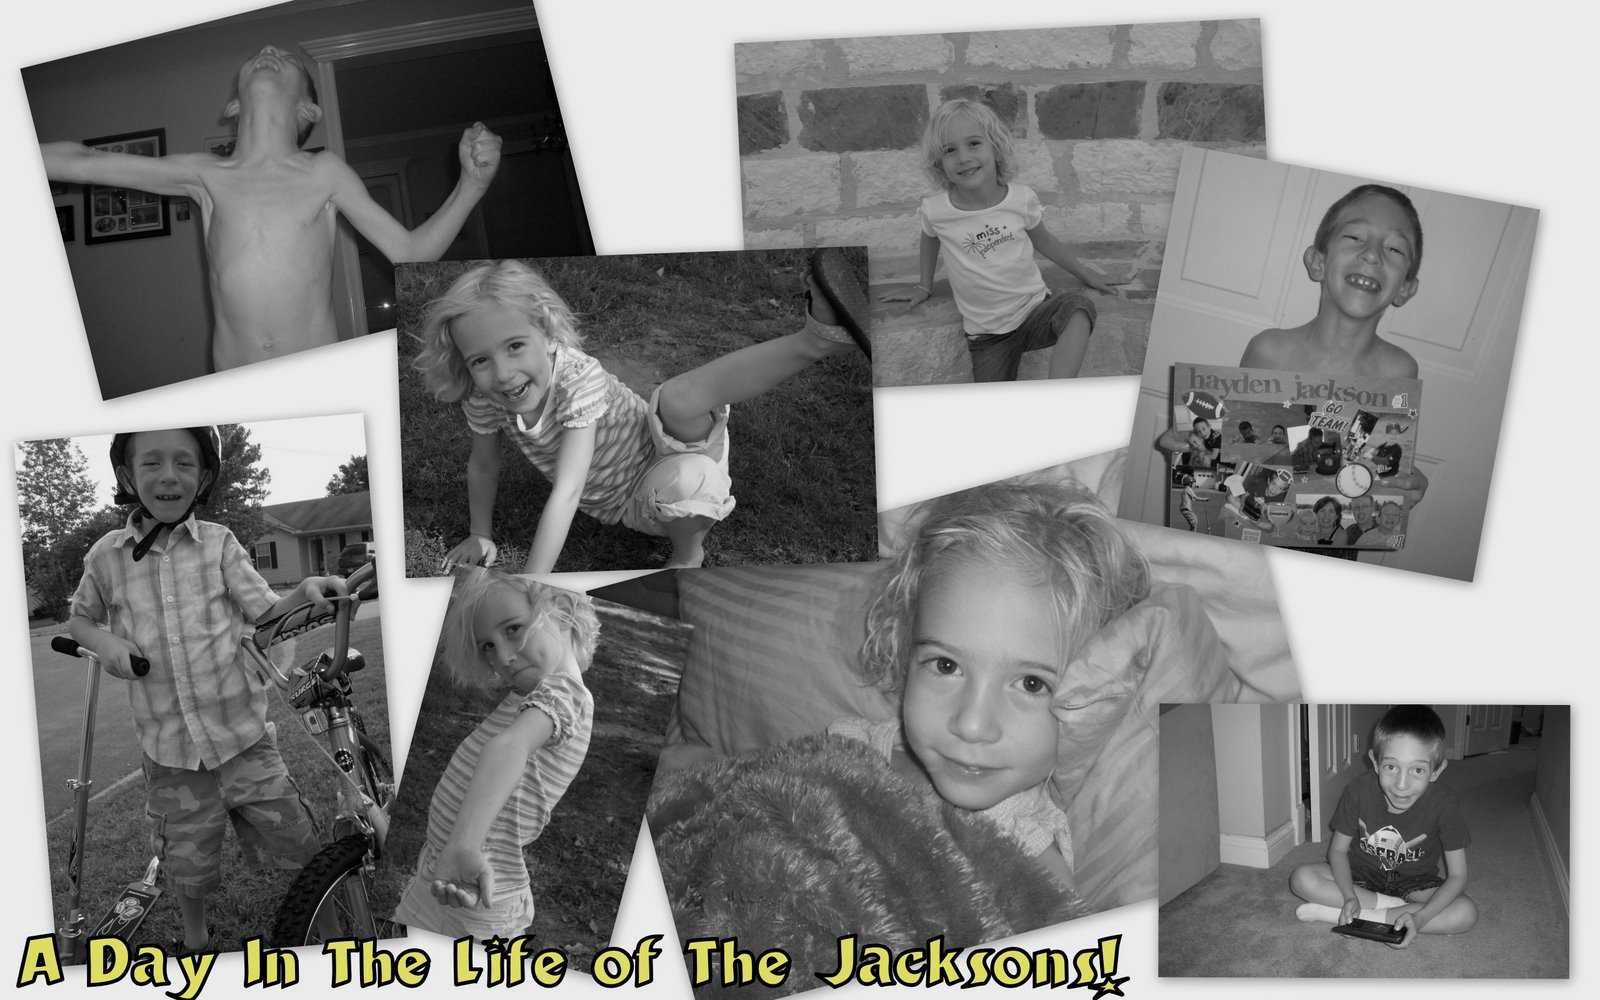 A Day In The Life Of The Jacksons!